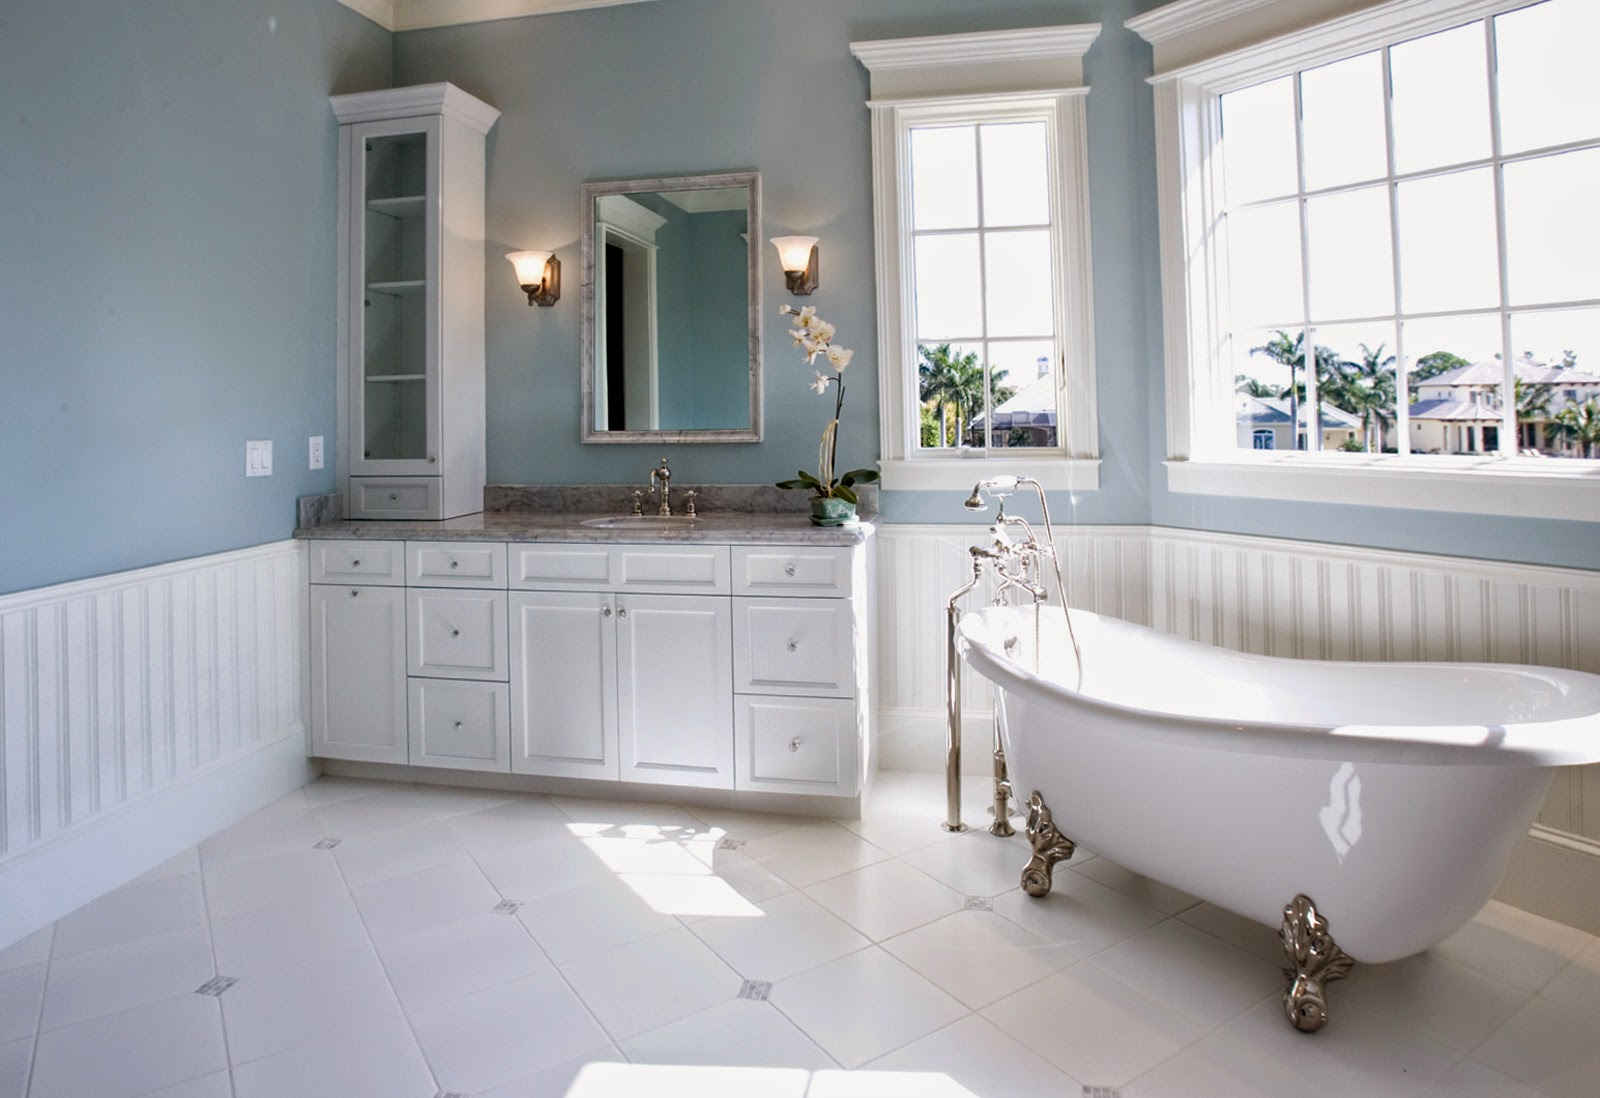 Top 10 beautiful bathroom design 2014 home interior blog for Pretty bathroom decorating ideas